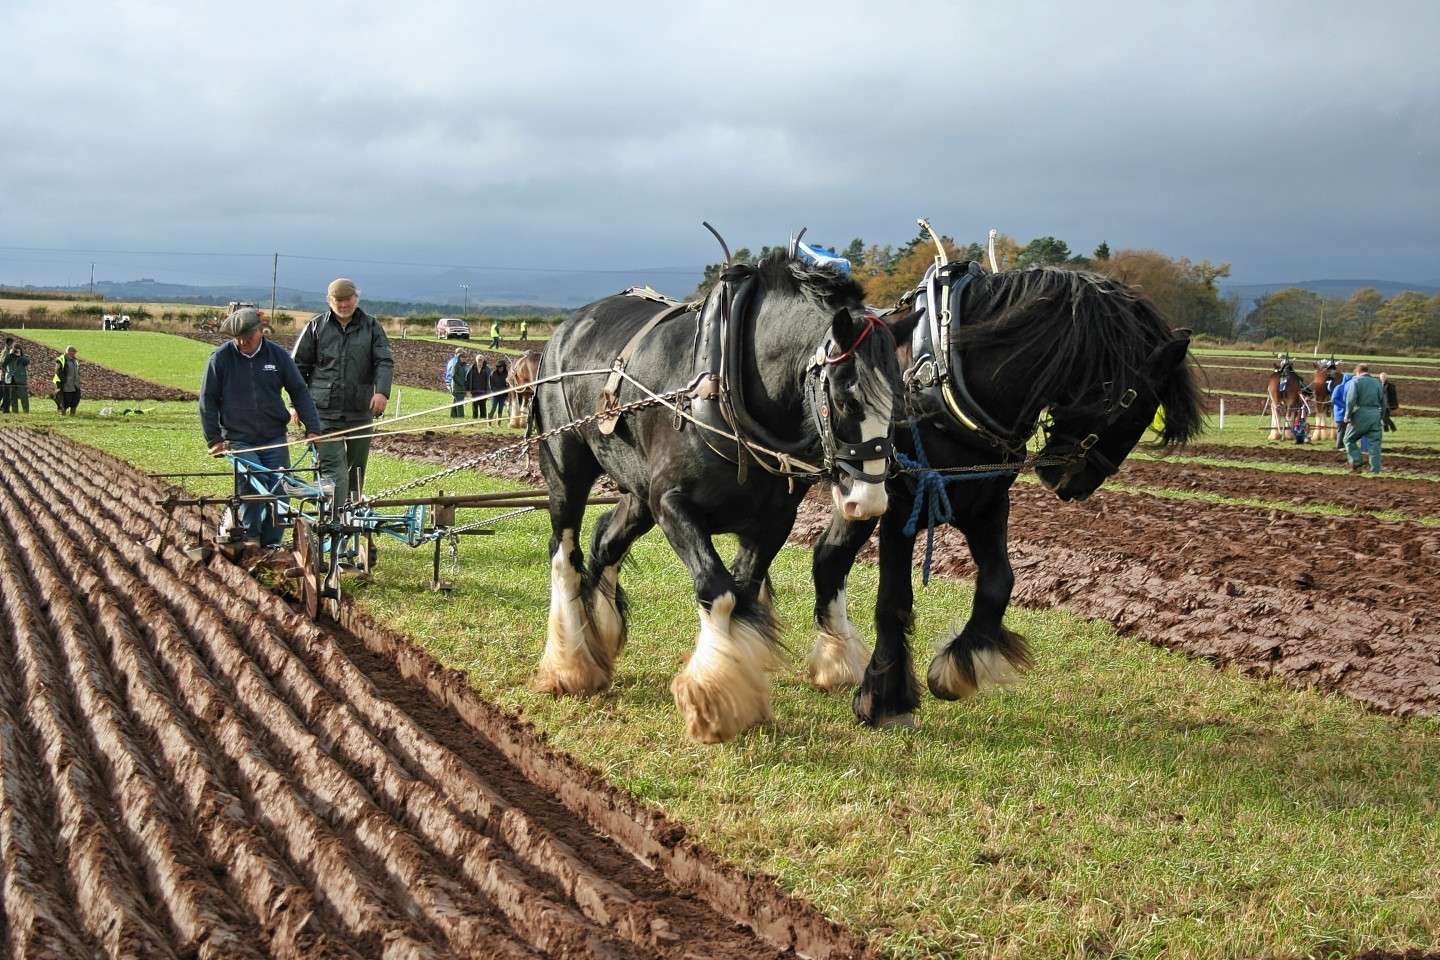 Jim Elliott with a pair of horses ploughing